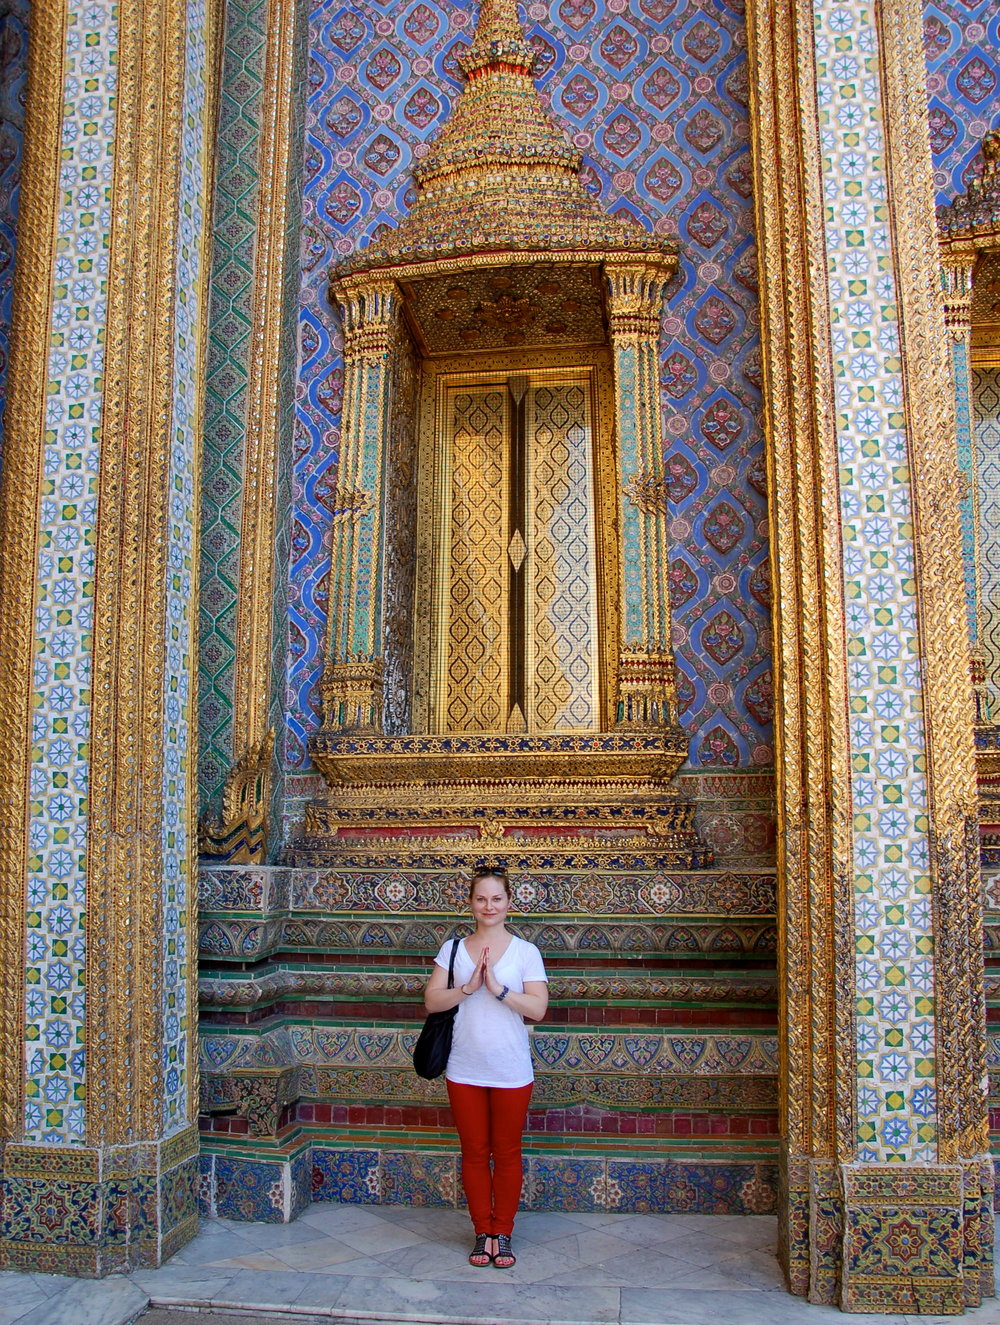 In front of one of the ornate structures at The Grand Palace in Bangkok.